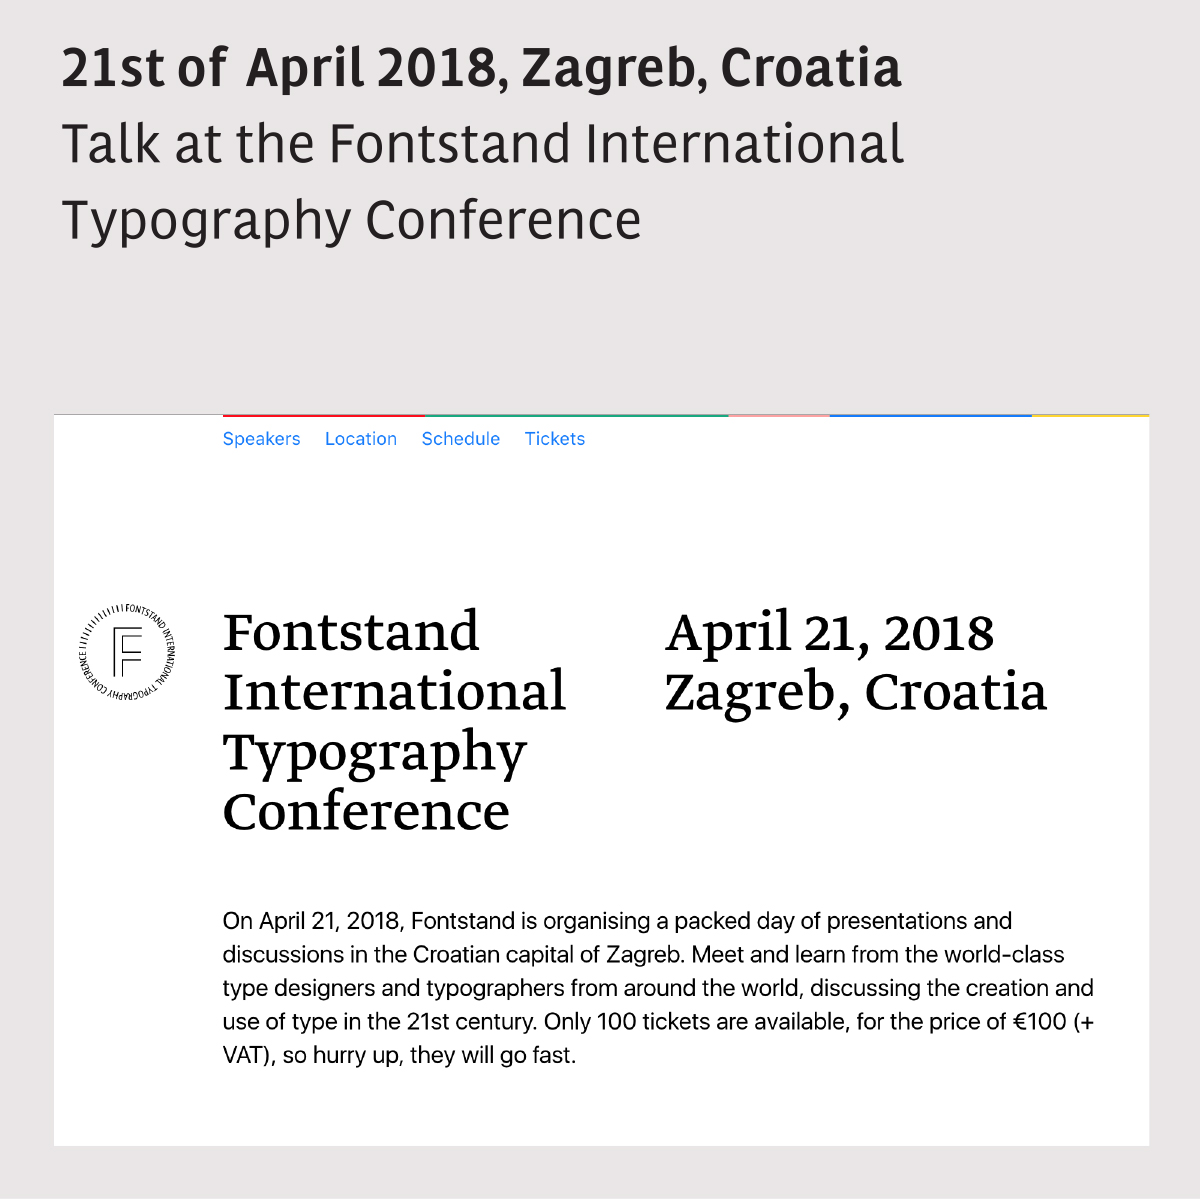 Fontstand International Typography Conference